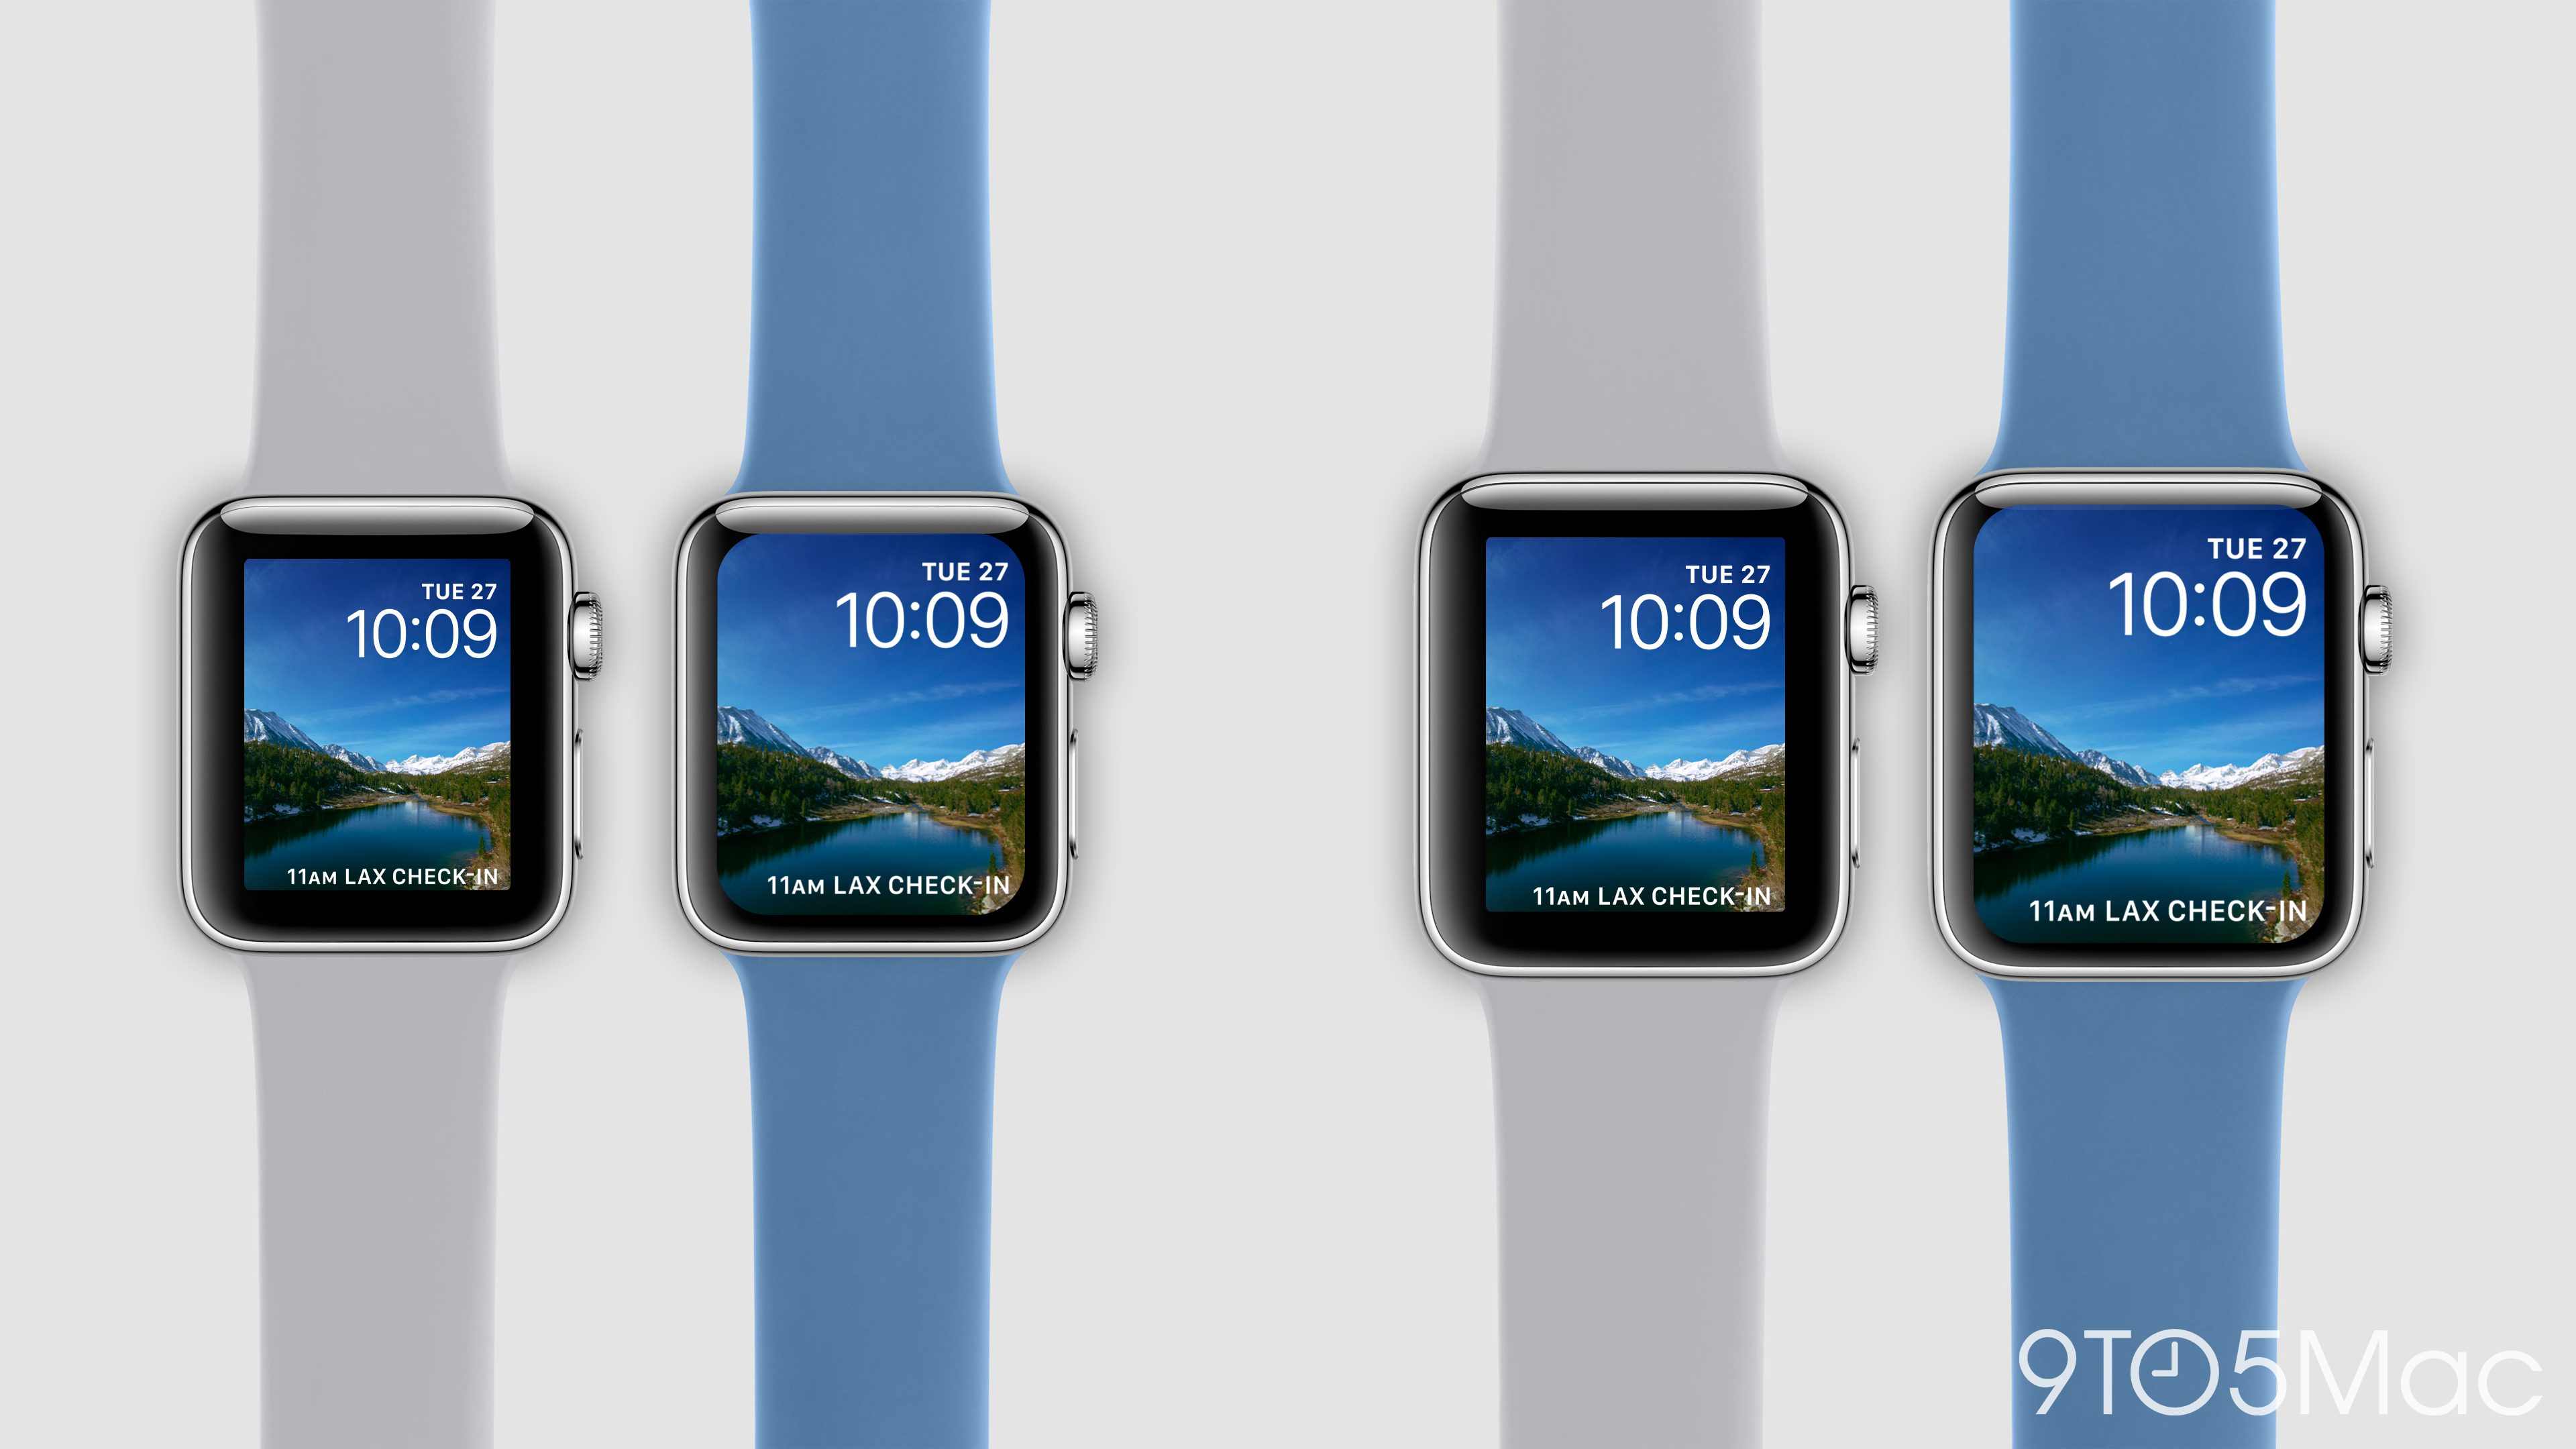 apple_watch_new_9to5mac_2.jpg